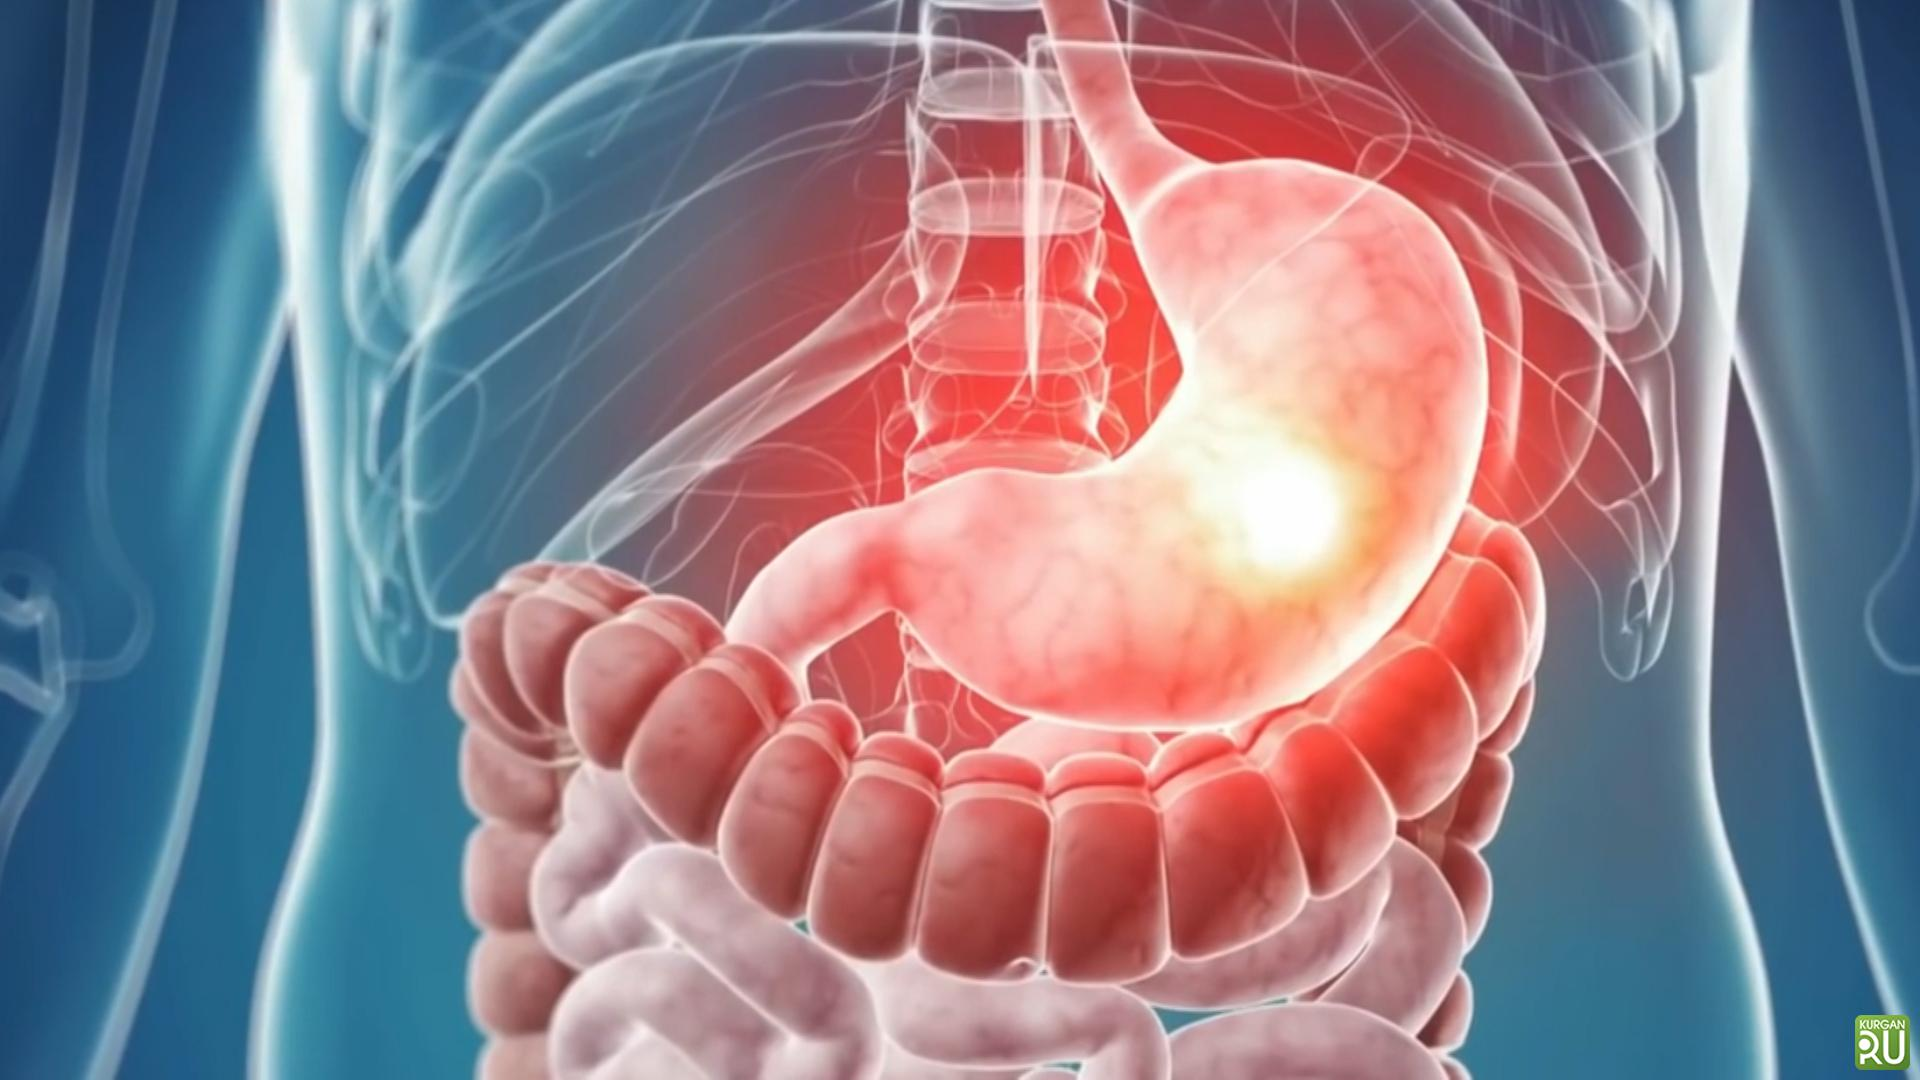 Stomach Diseases